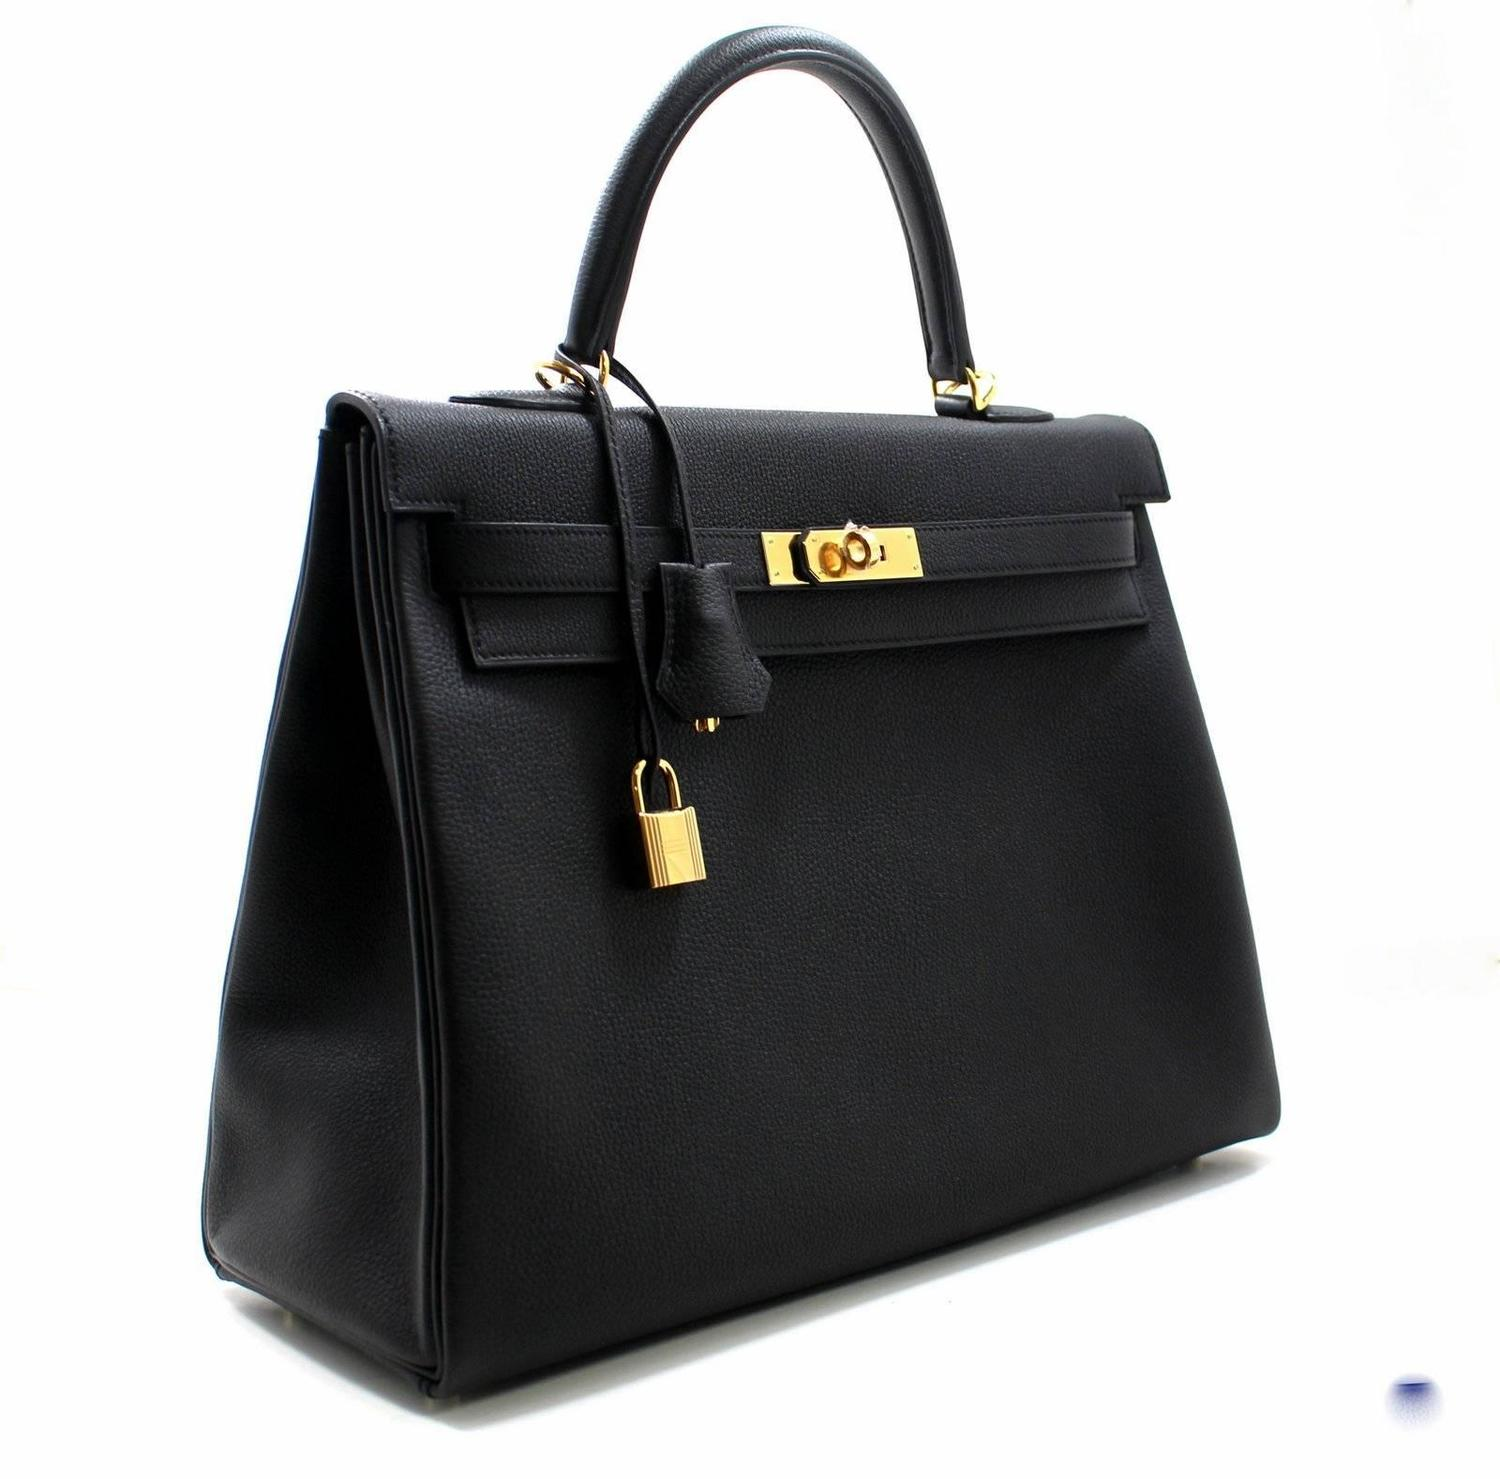 knock off birkin bags - Herm��s Black Togo Leather Kelly Bag- 35 cm with Gold Hardware For ...